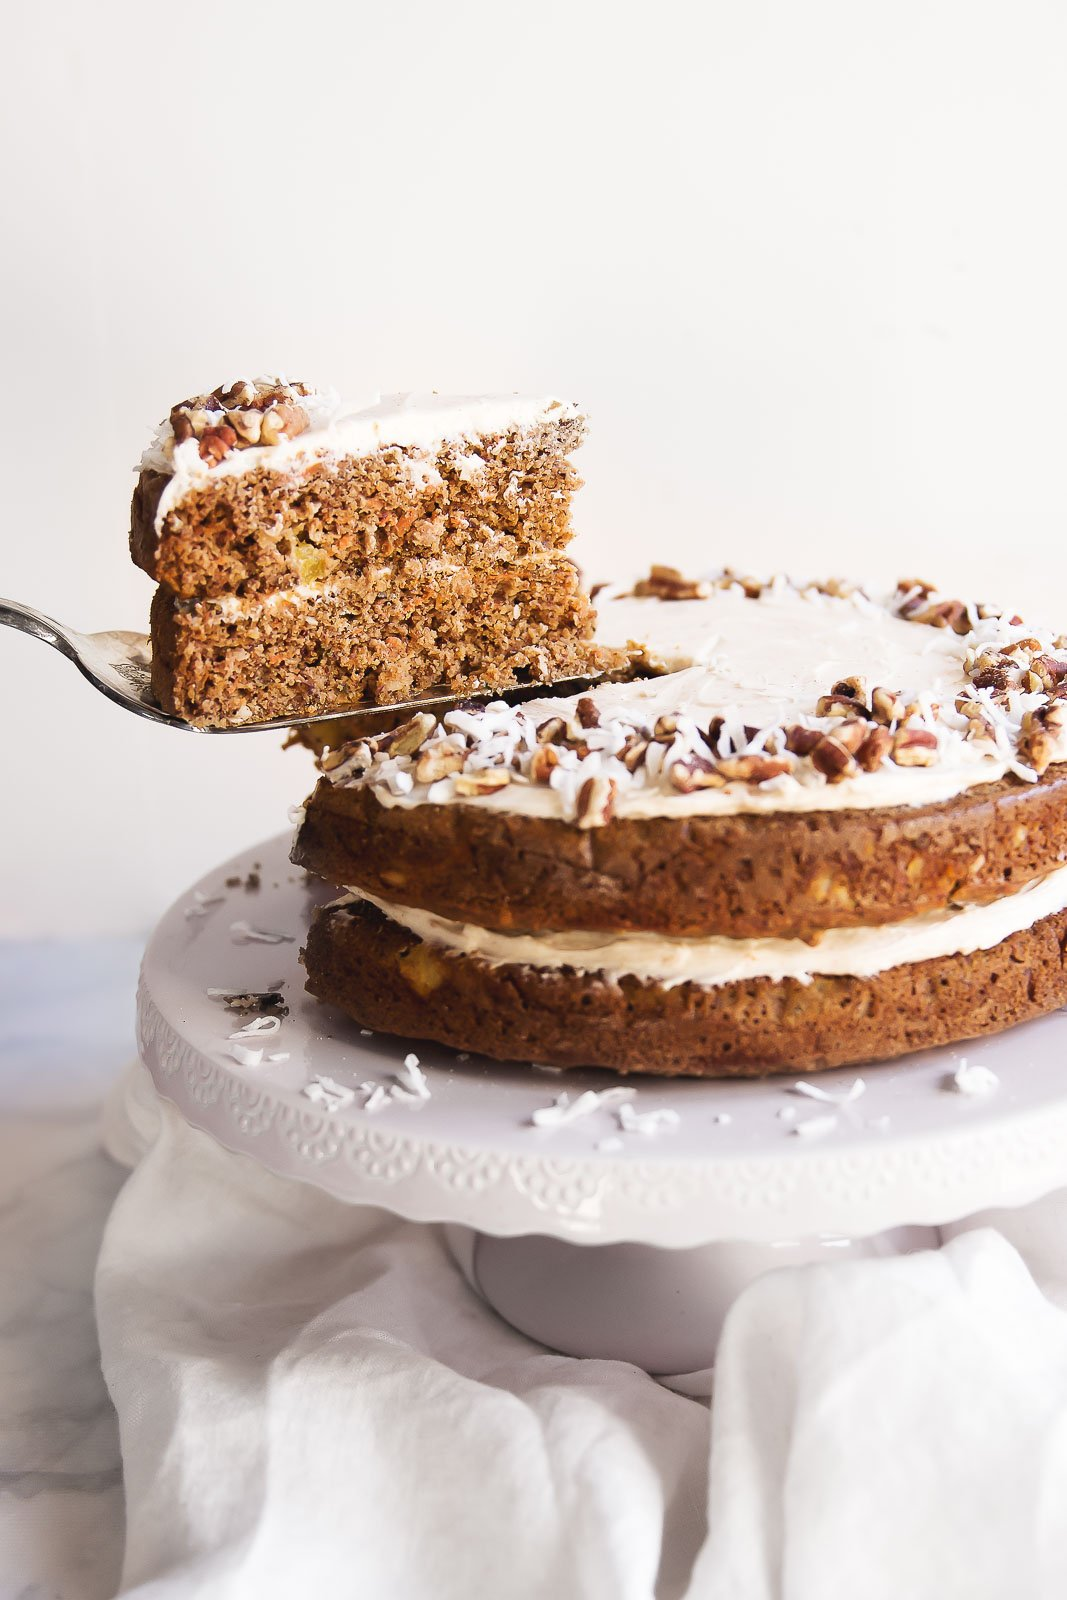 15. Gluten Free Carrot Cake with Cinnamon Cream Cheese Frosting